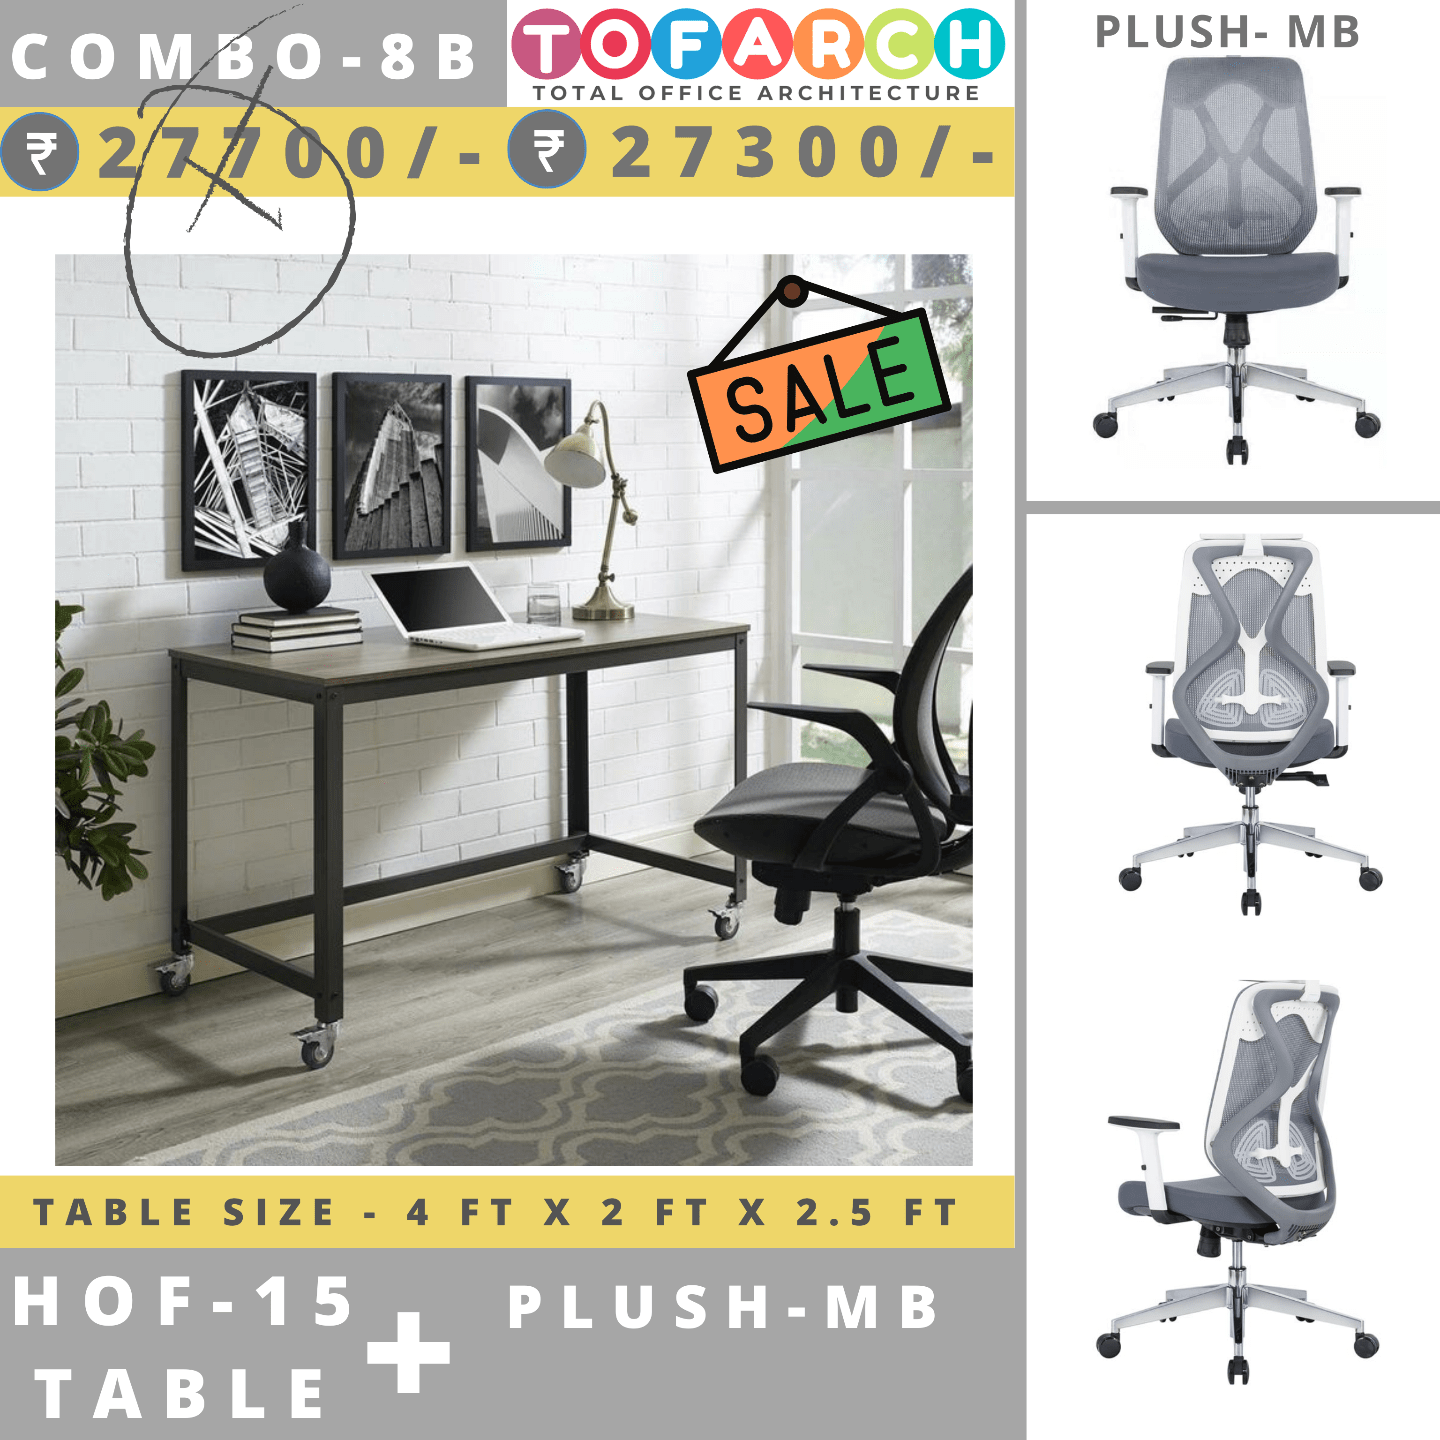 Table Chair Combo - 8B (HOF 15 Table + PLUSH MB Chair)